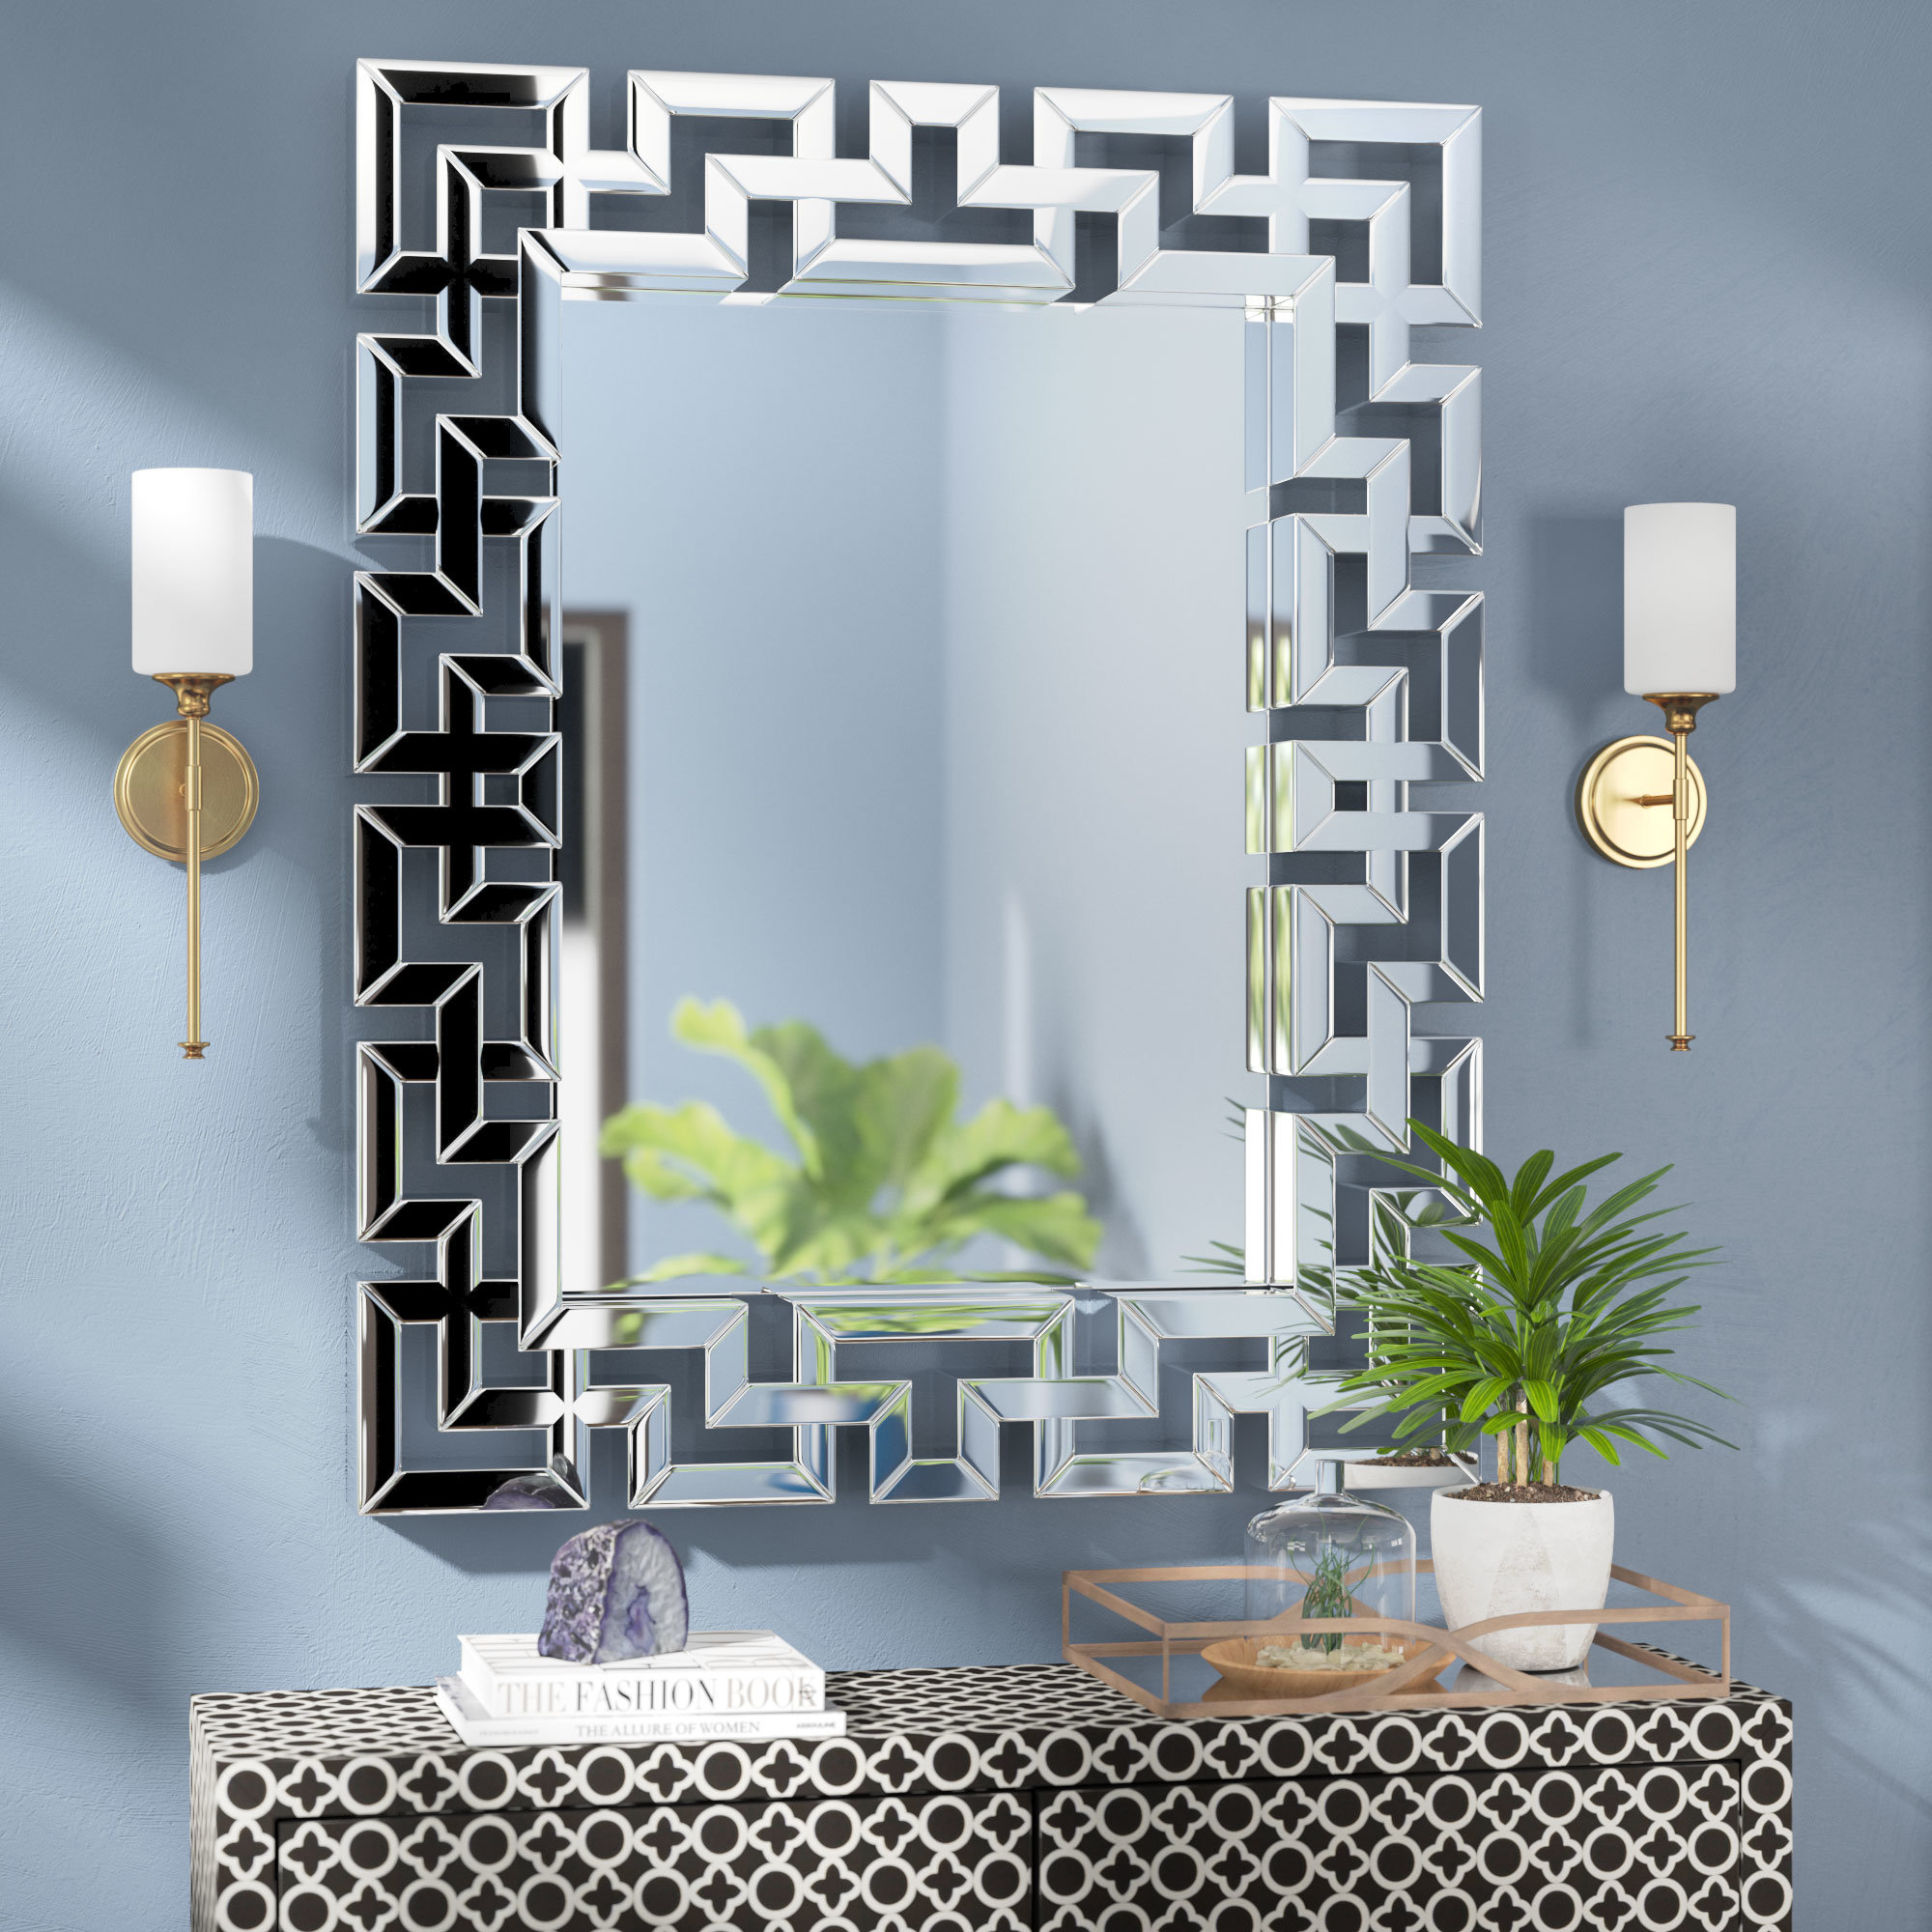 Geometric Mirror | Wayfair In Astrid Modern & Contemporary Accent Mirrors (View 10 of 20)